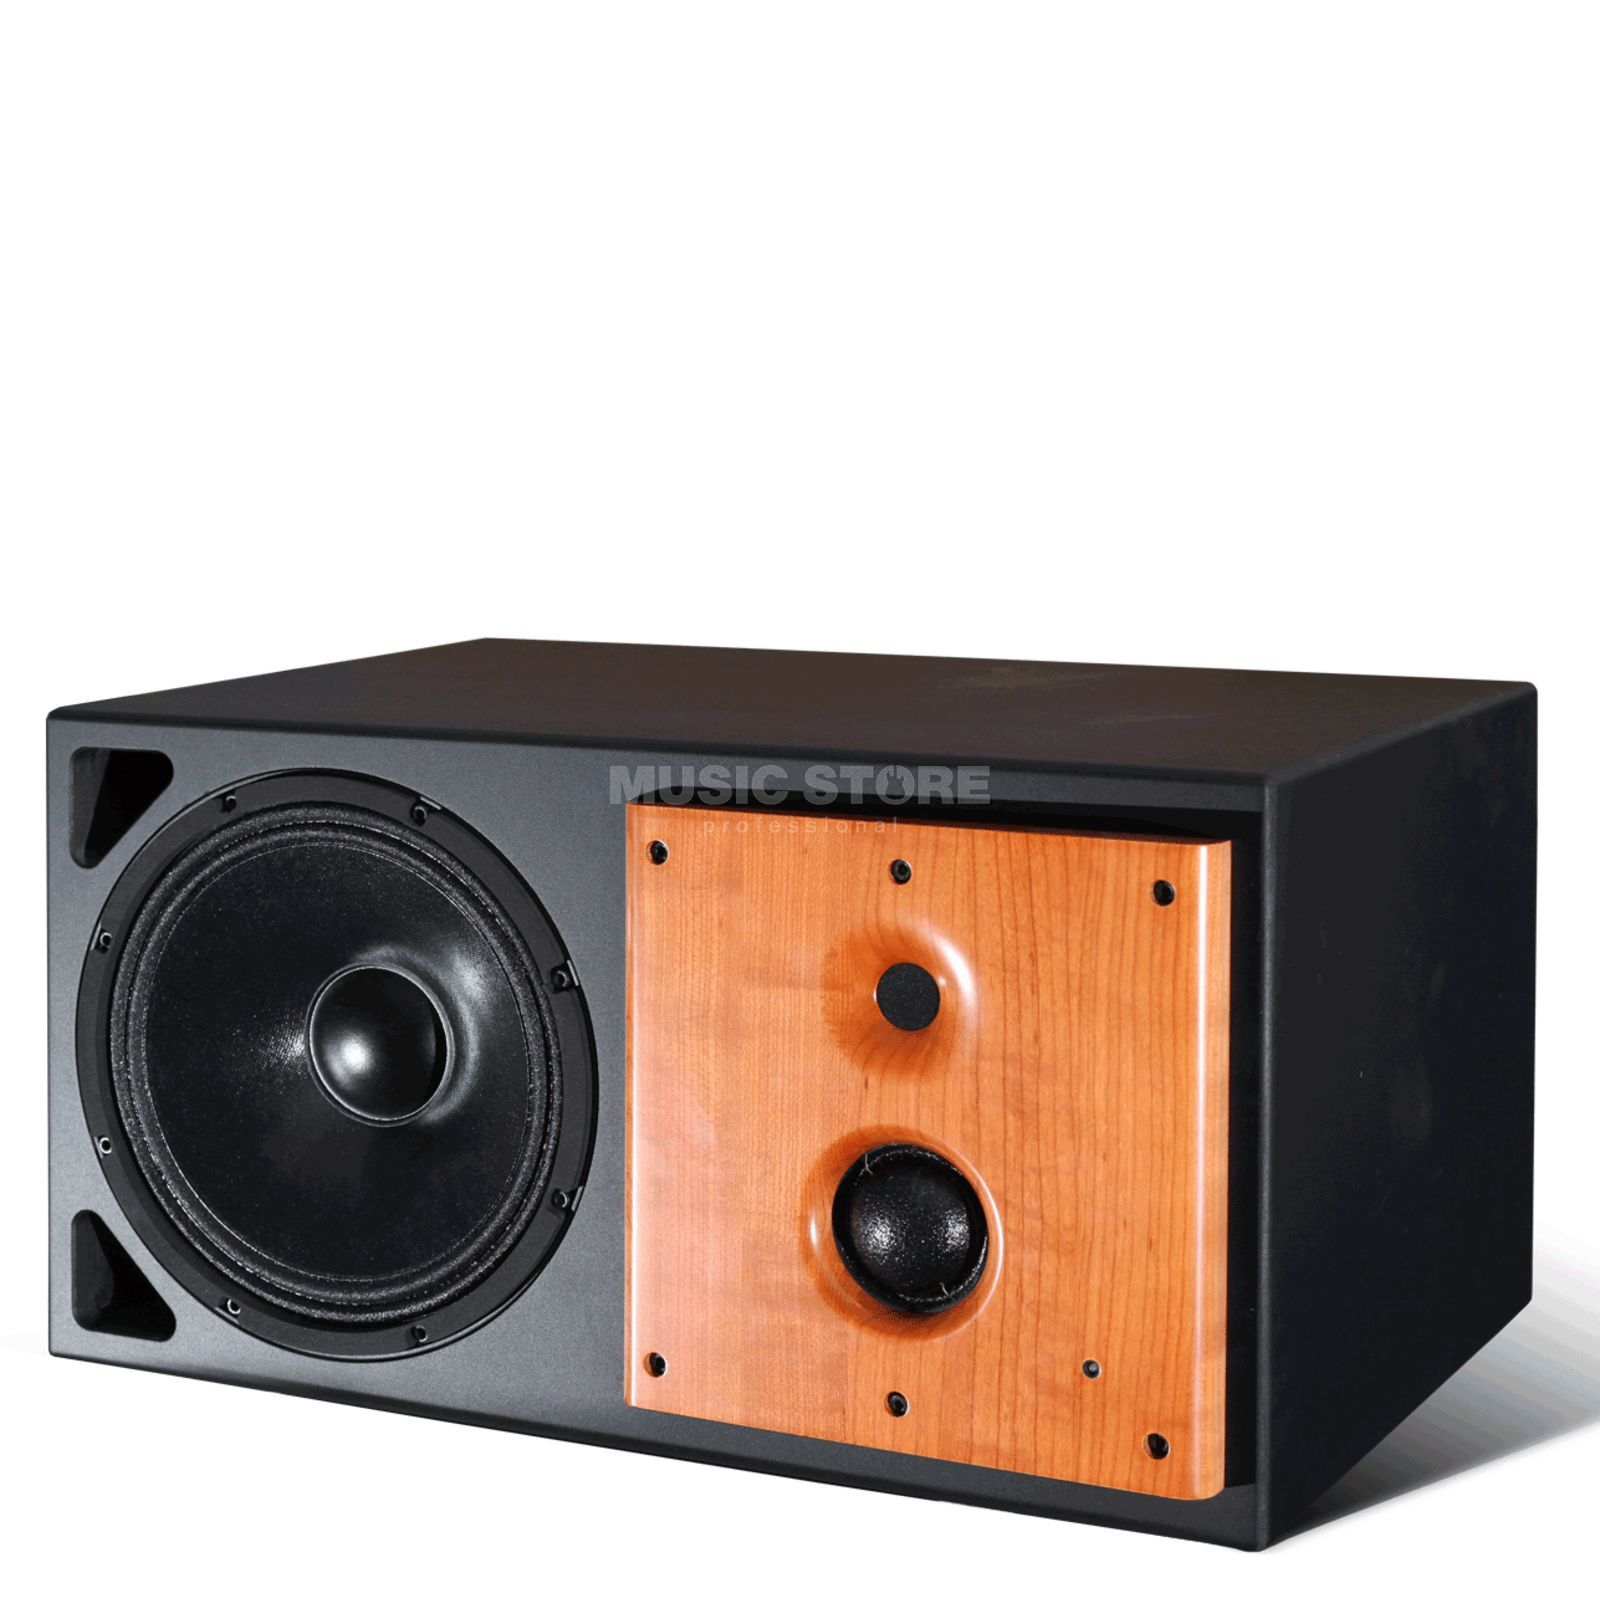 KS-Digital A300 - Monitorbox L Produktbild